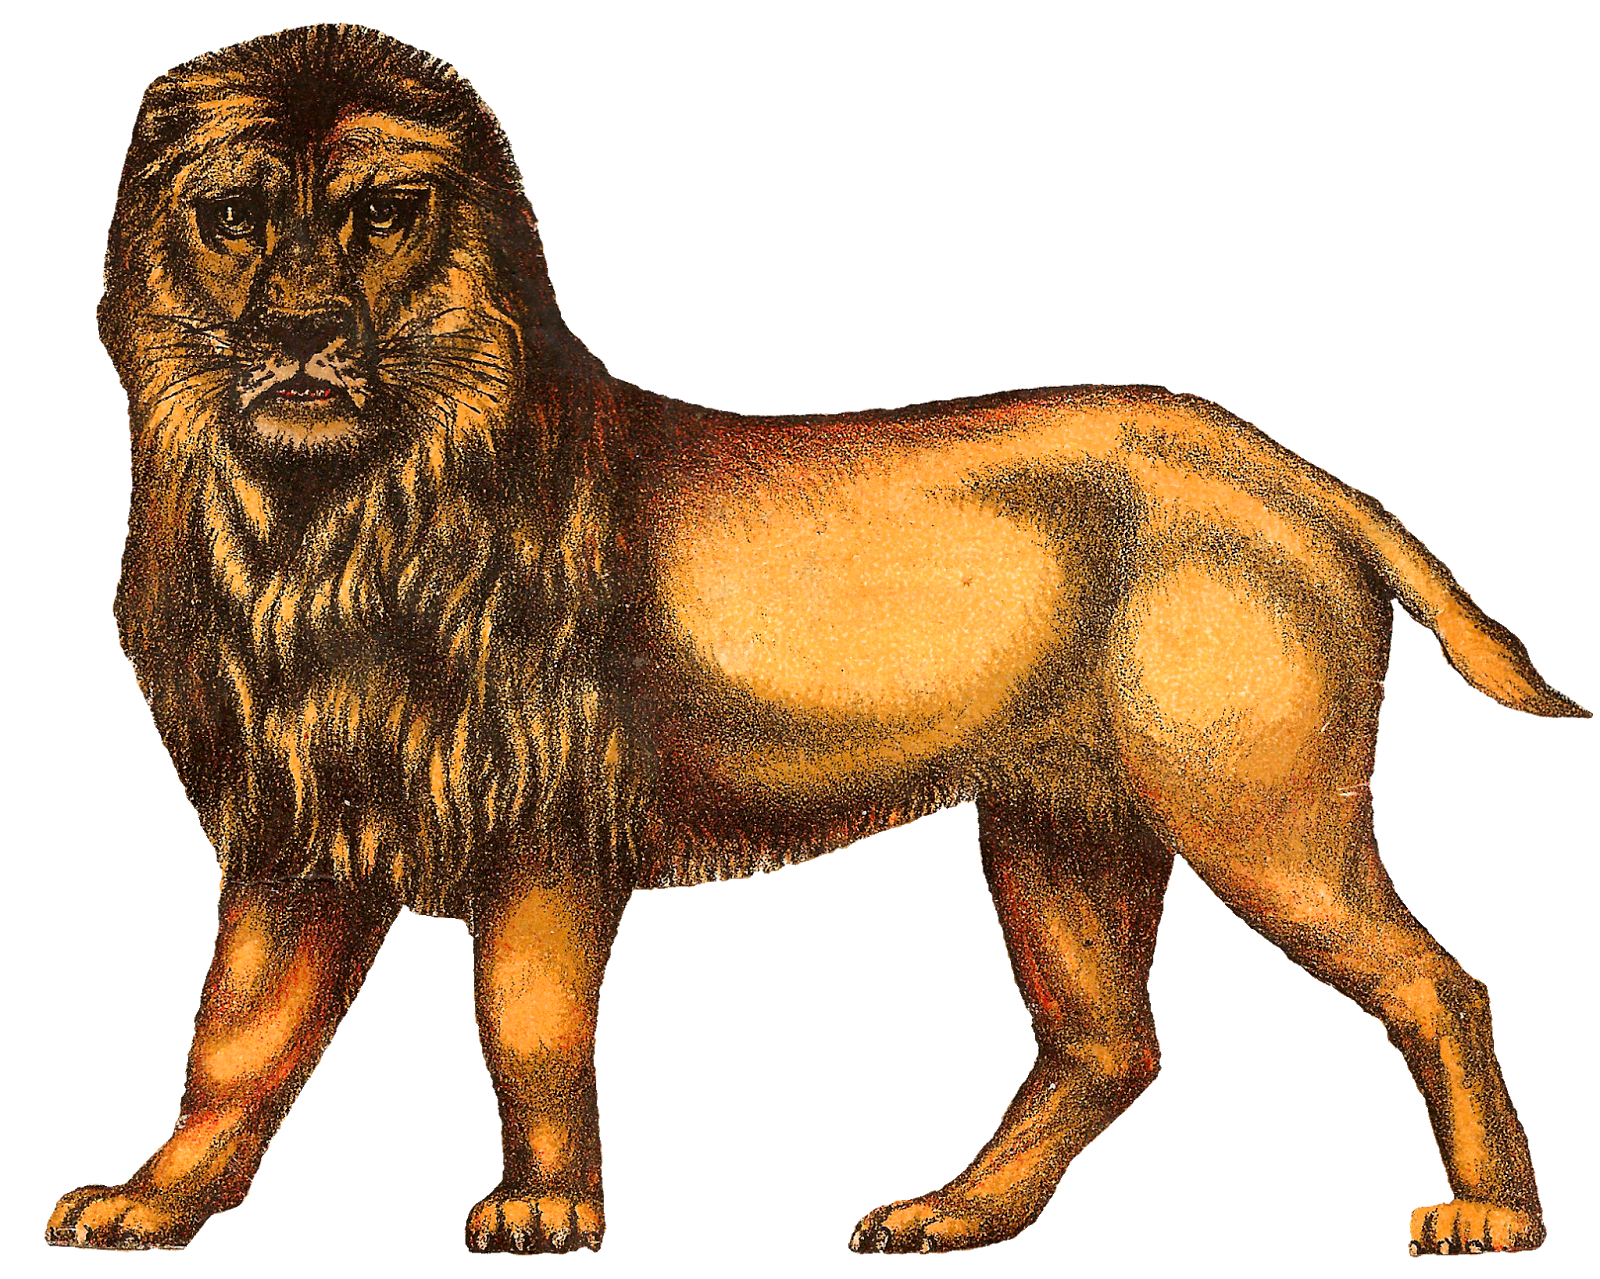 circus lion png - photo #29